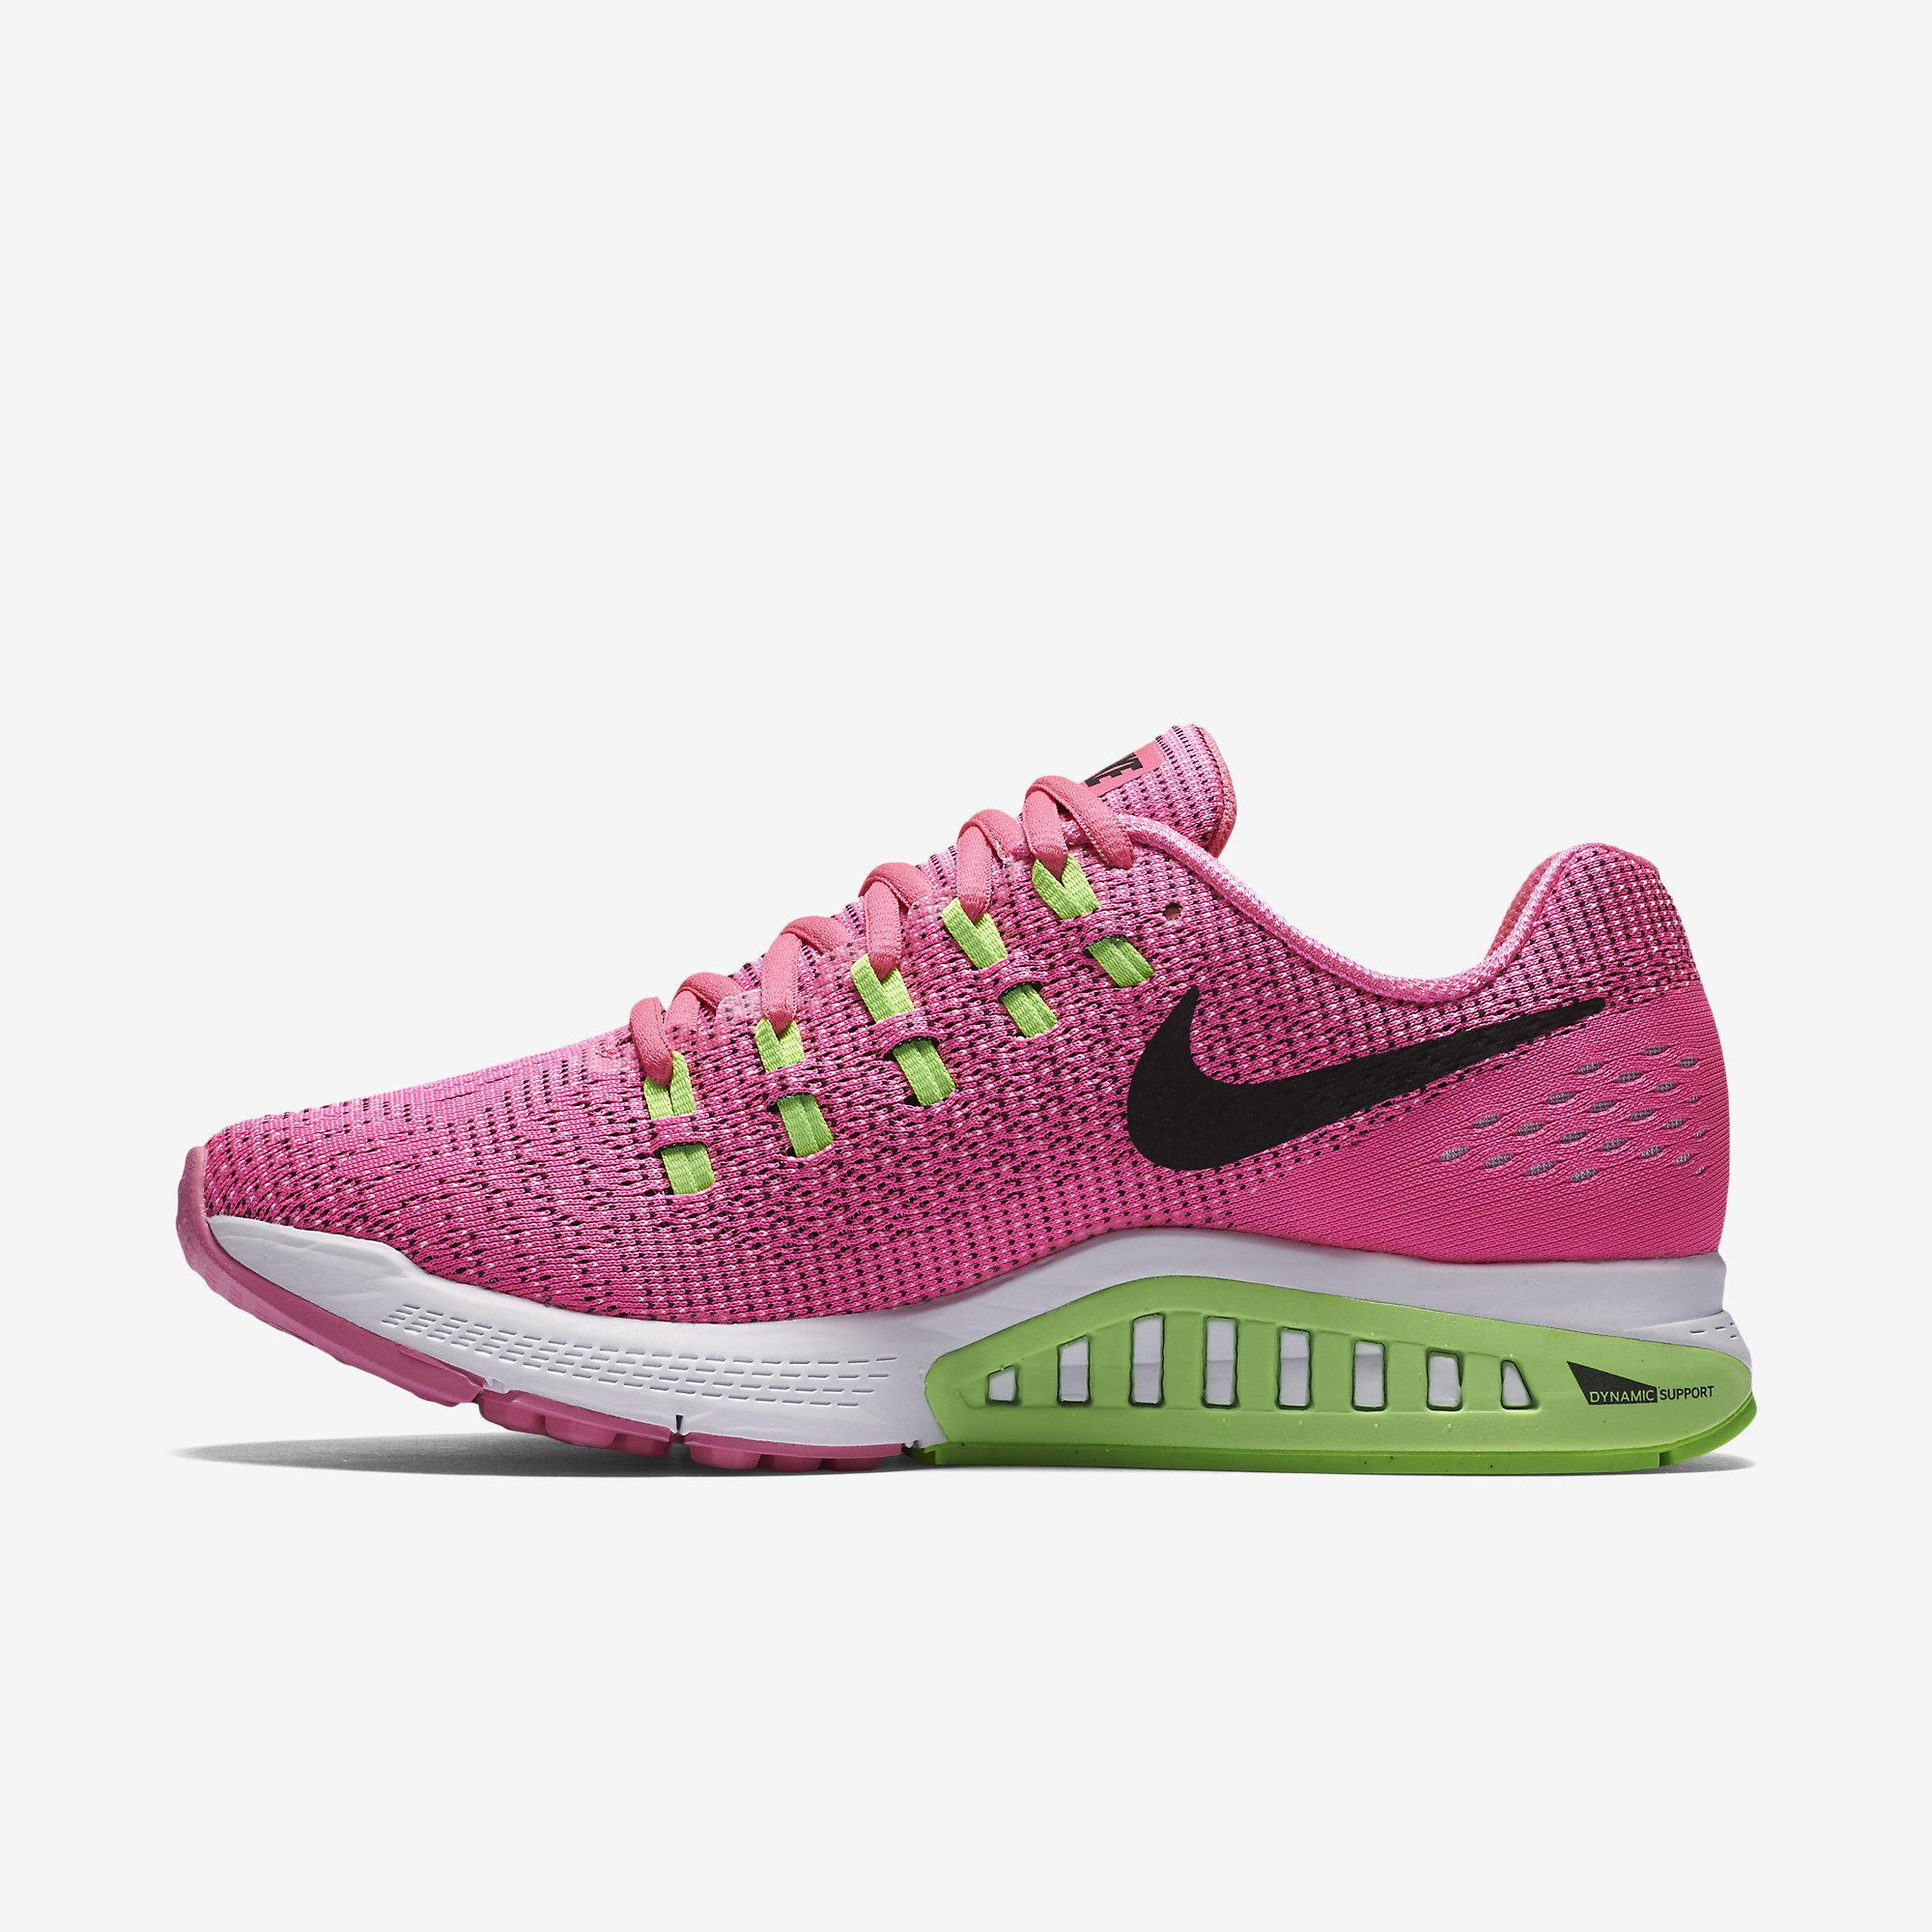 wholesale dealer 4cfa9 4d82a Nike Womens Air Zoom Structure 19 Running Shoes - Pink